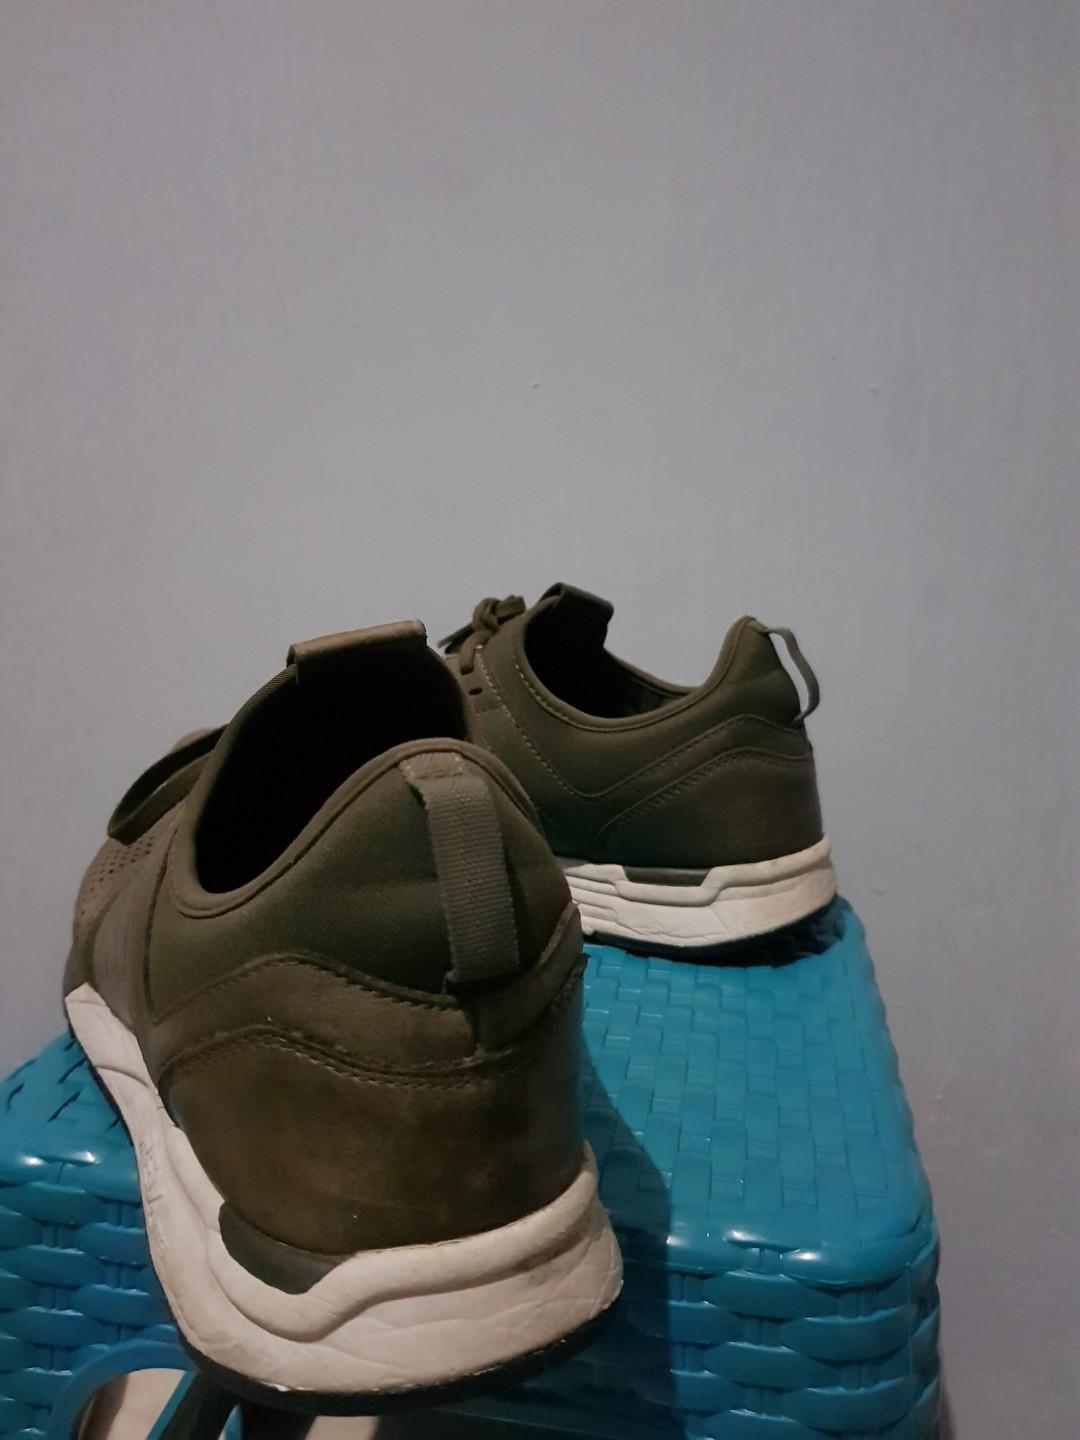 New Balance 247 leather olive green army